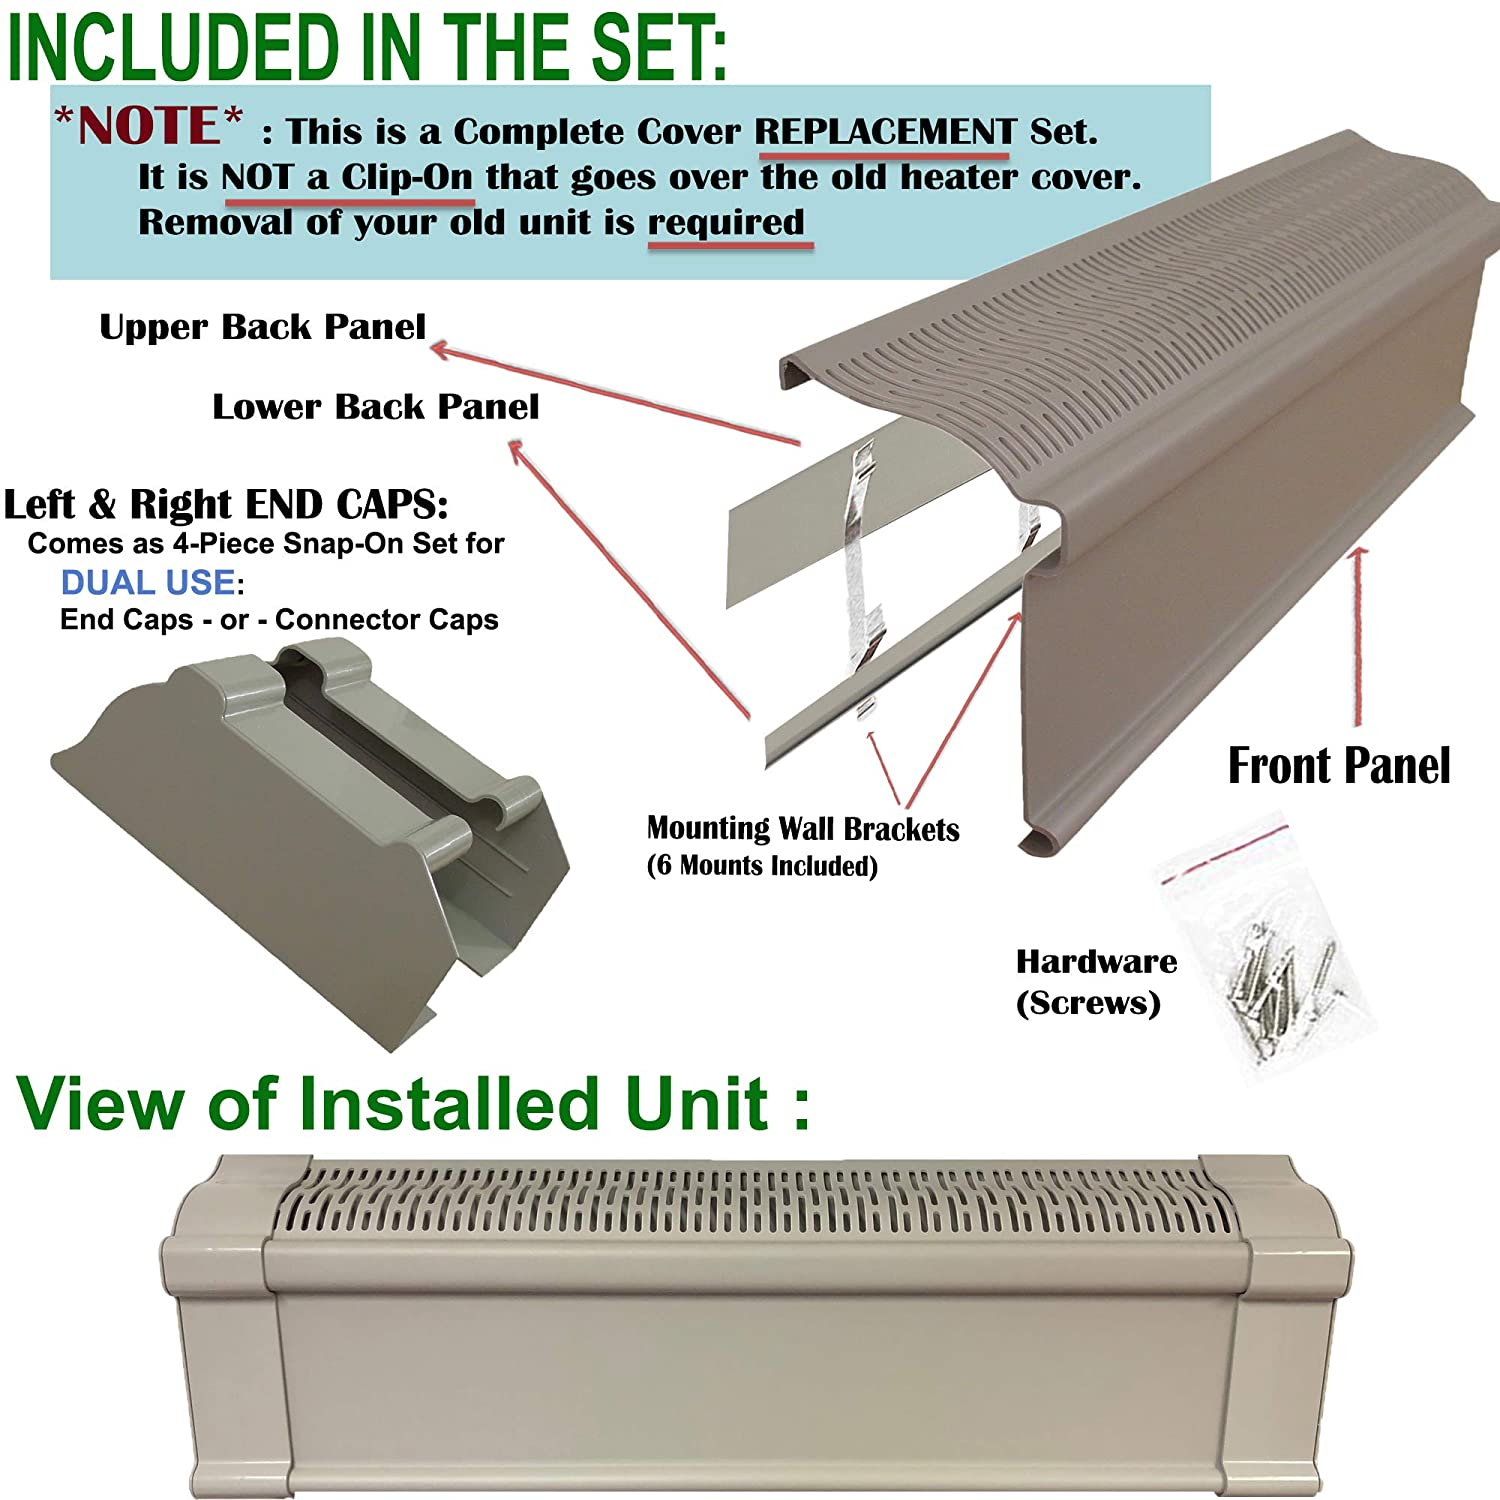 Baseboard Heat Covers, Better Baseboard Heater Covers WITH Left Right END CAPS Direct REPLACEMENT Set FEATHER GRAY 4 Feet